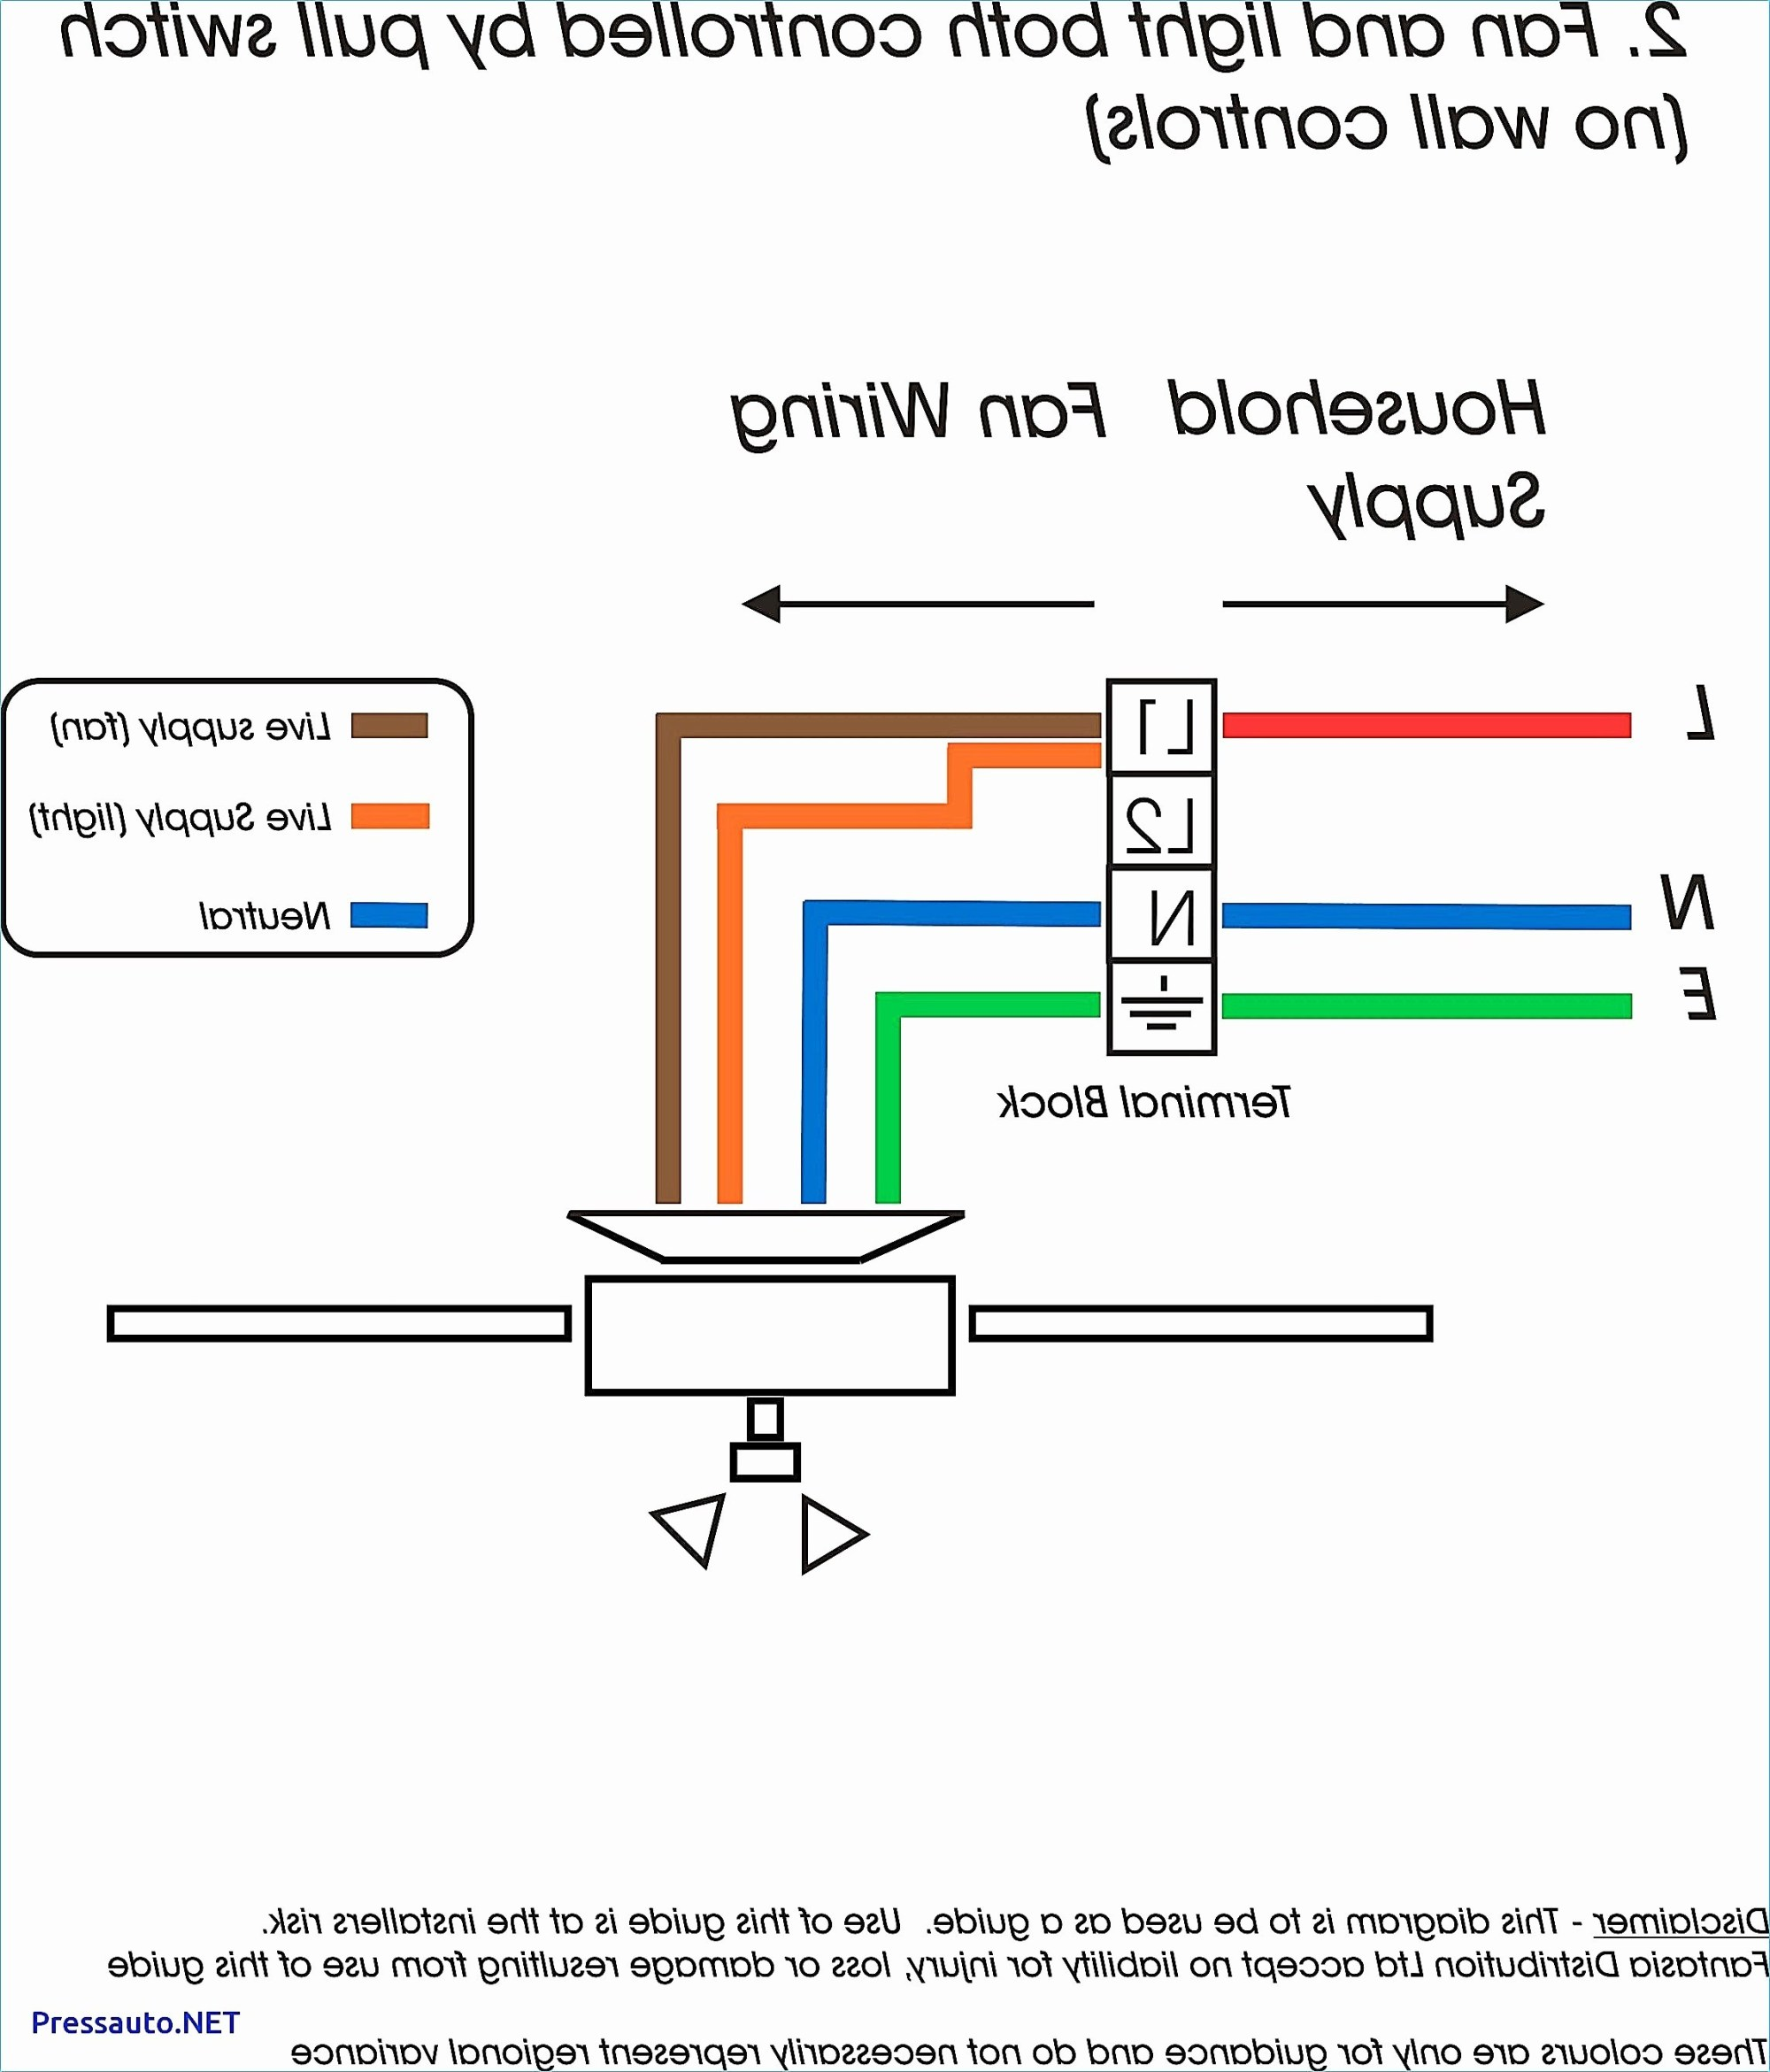 hight resolution of hdmi over cat5 wiring diagram collection cat5 wiring diagram best cat5 wiring diagram awesome 10 download wiring diagram